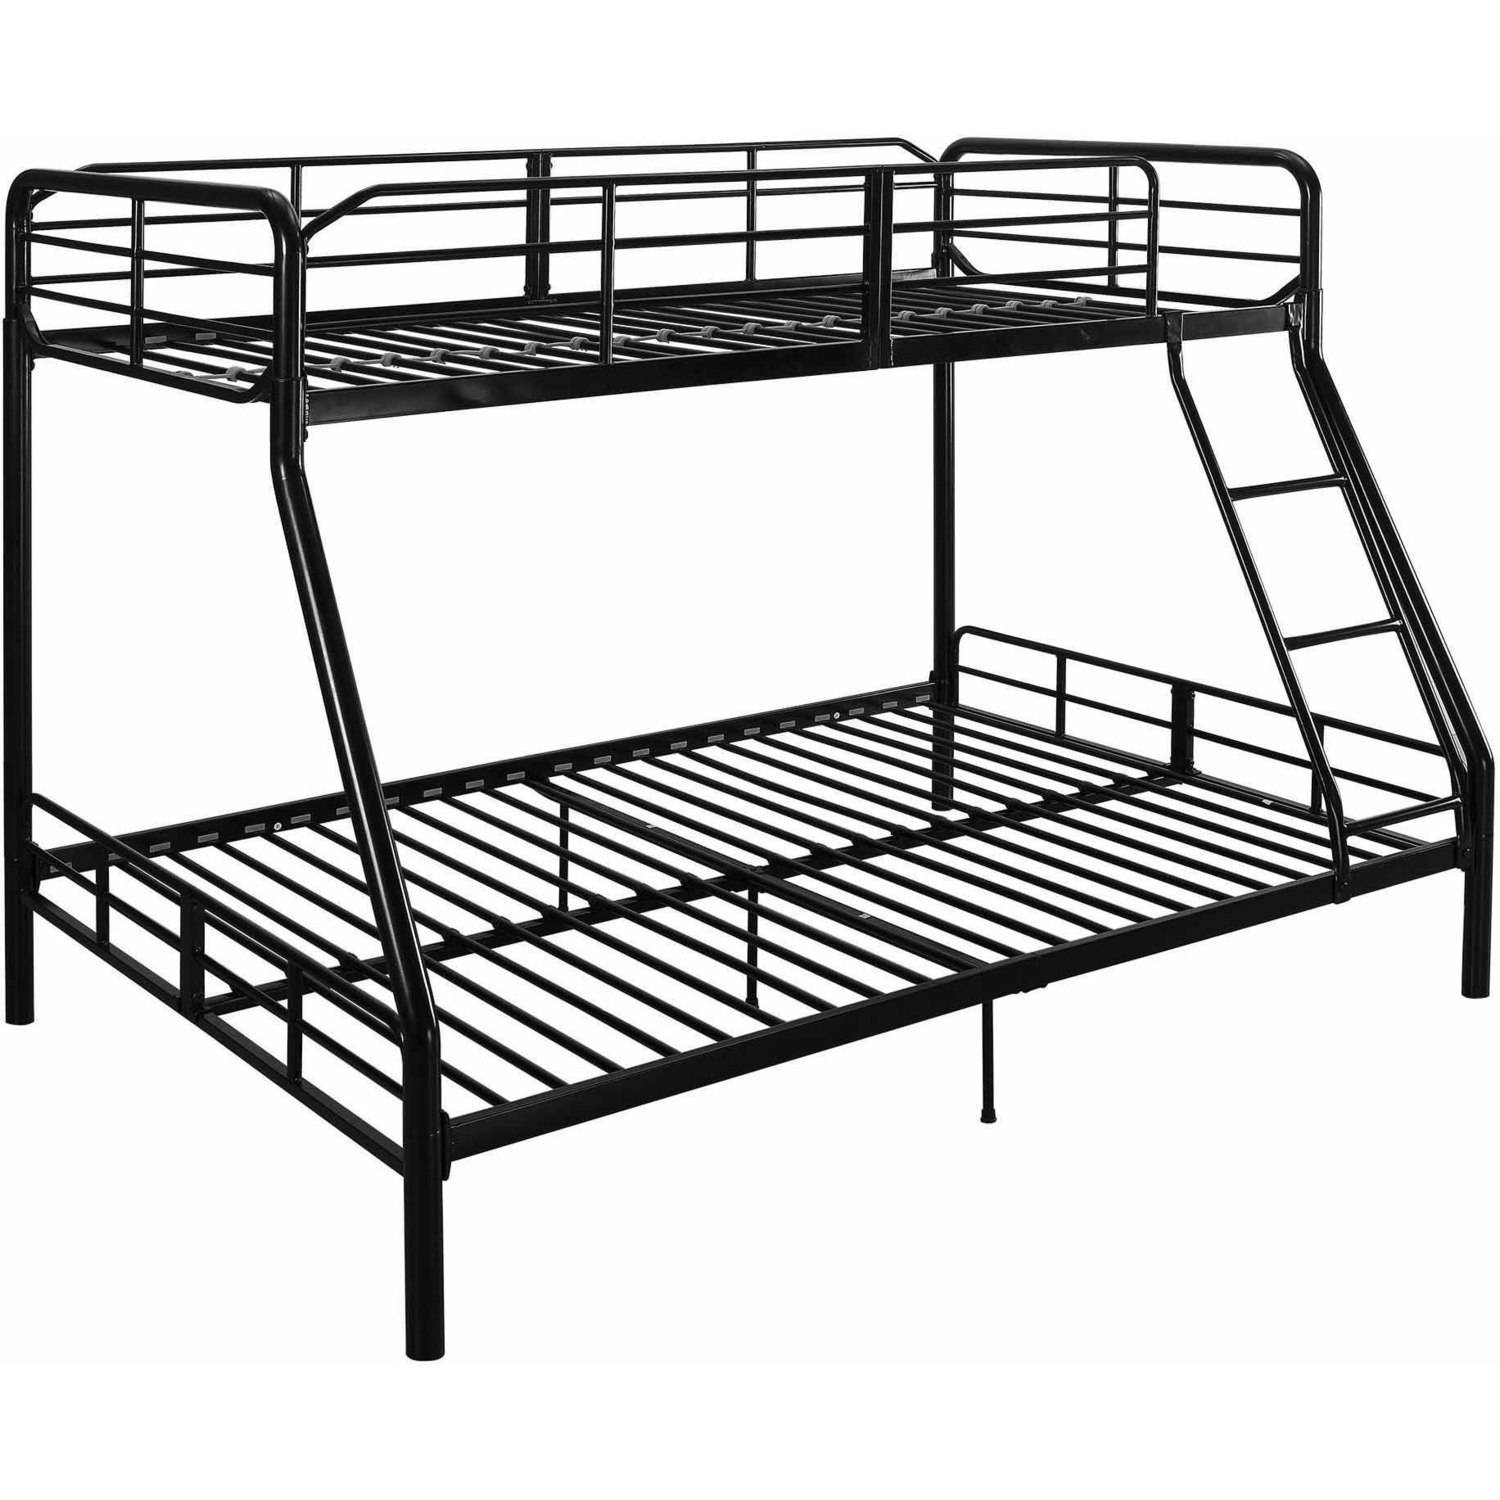 target acke cover assembly twin futons payton bunk instructions metal frame black wood over bed futon info